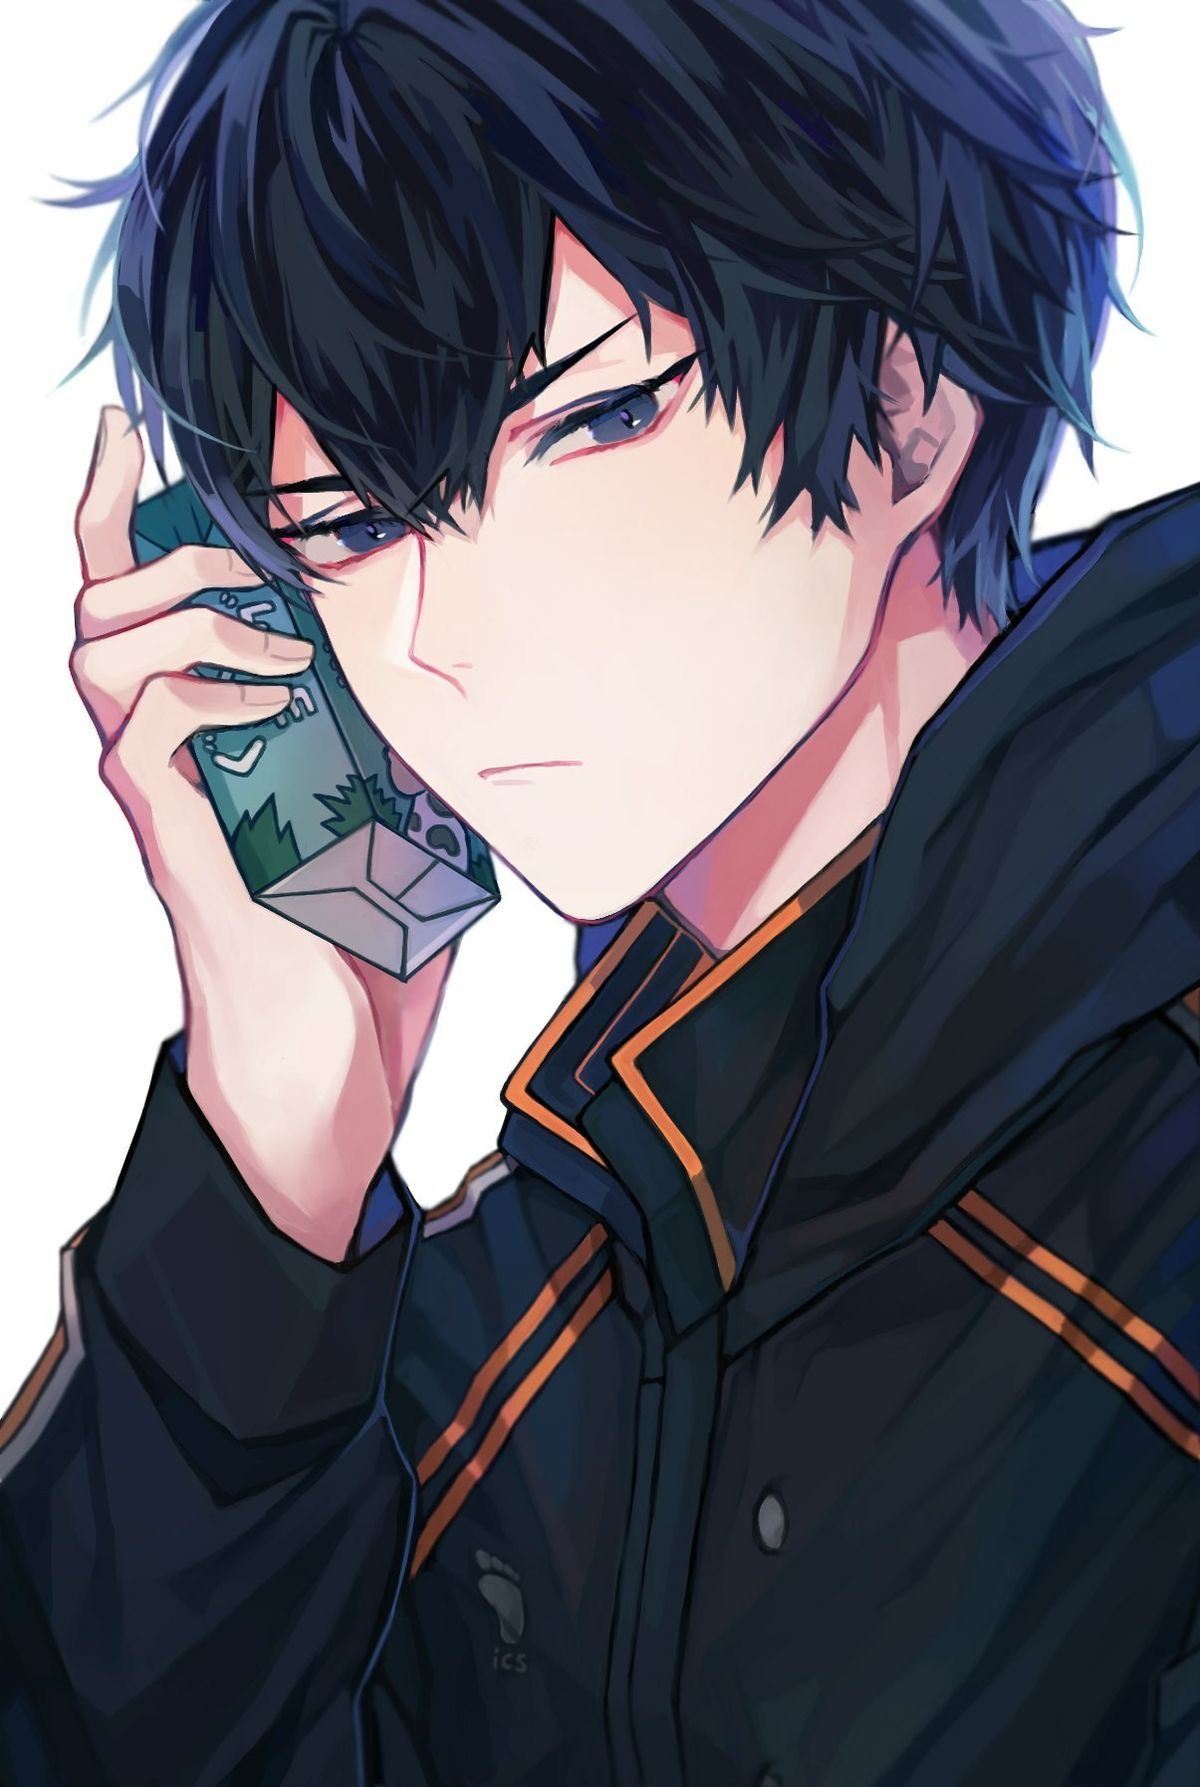 Pin By Kess On Turners In 2020 Black Haired Anime Boy Blue Hair Anime Boy Anime Guys With Glasses